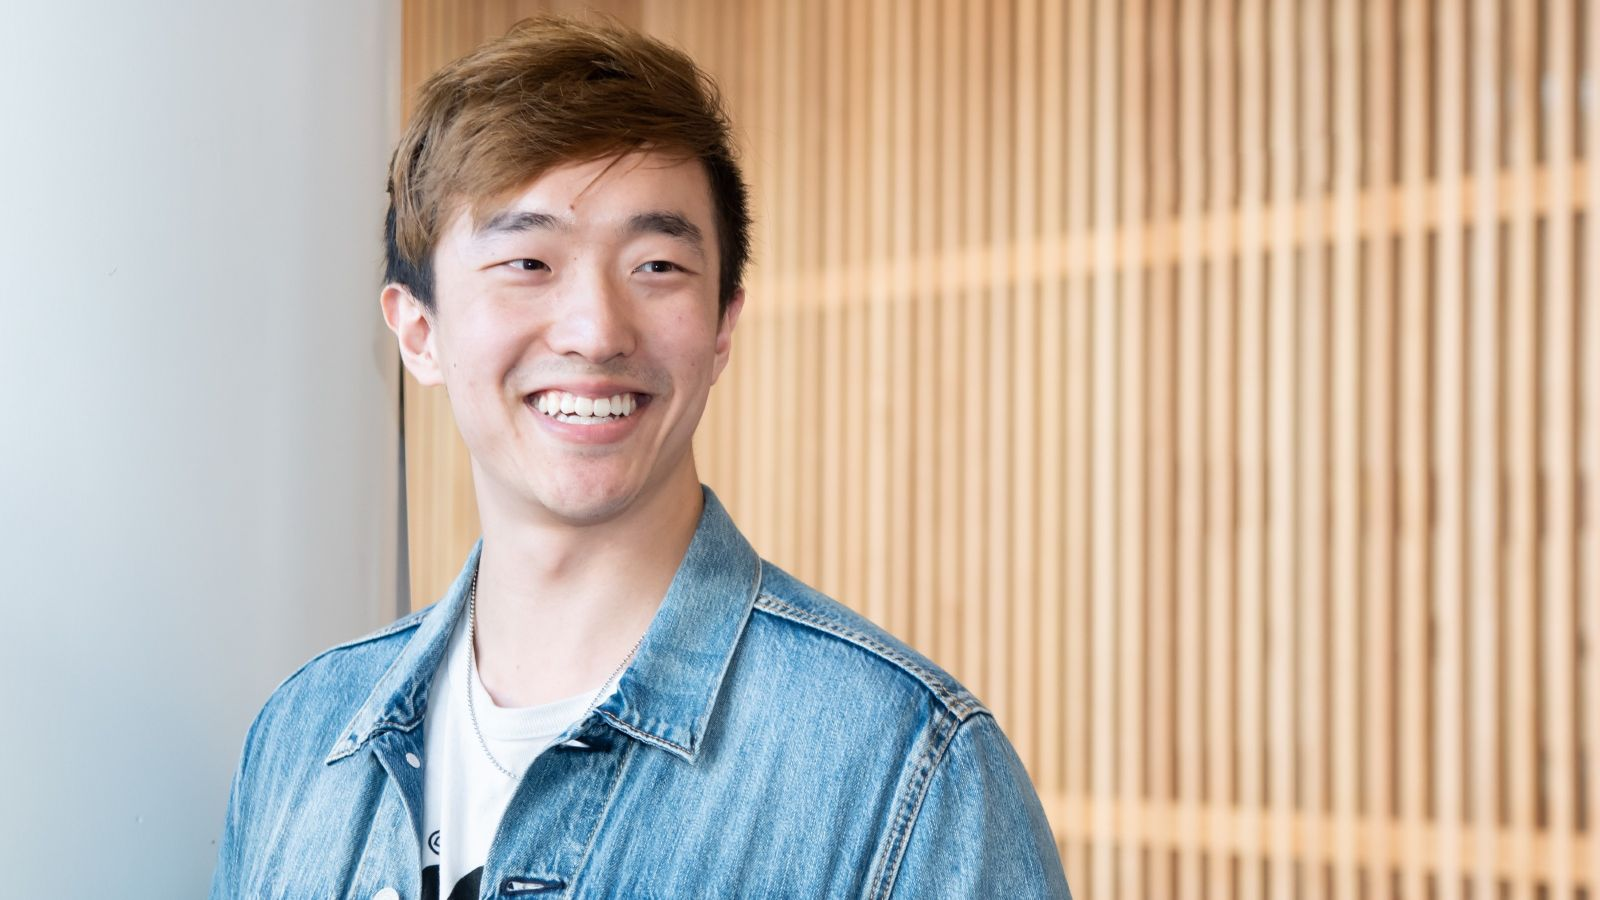 Oliver Ruan smiling in front of wood panel background